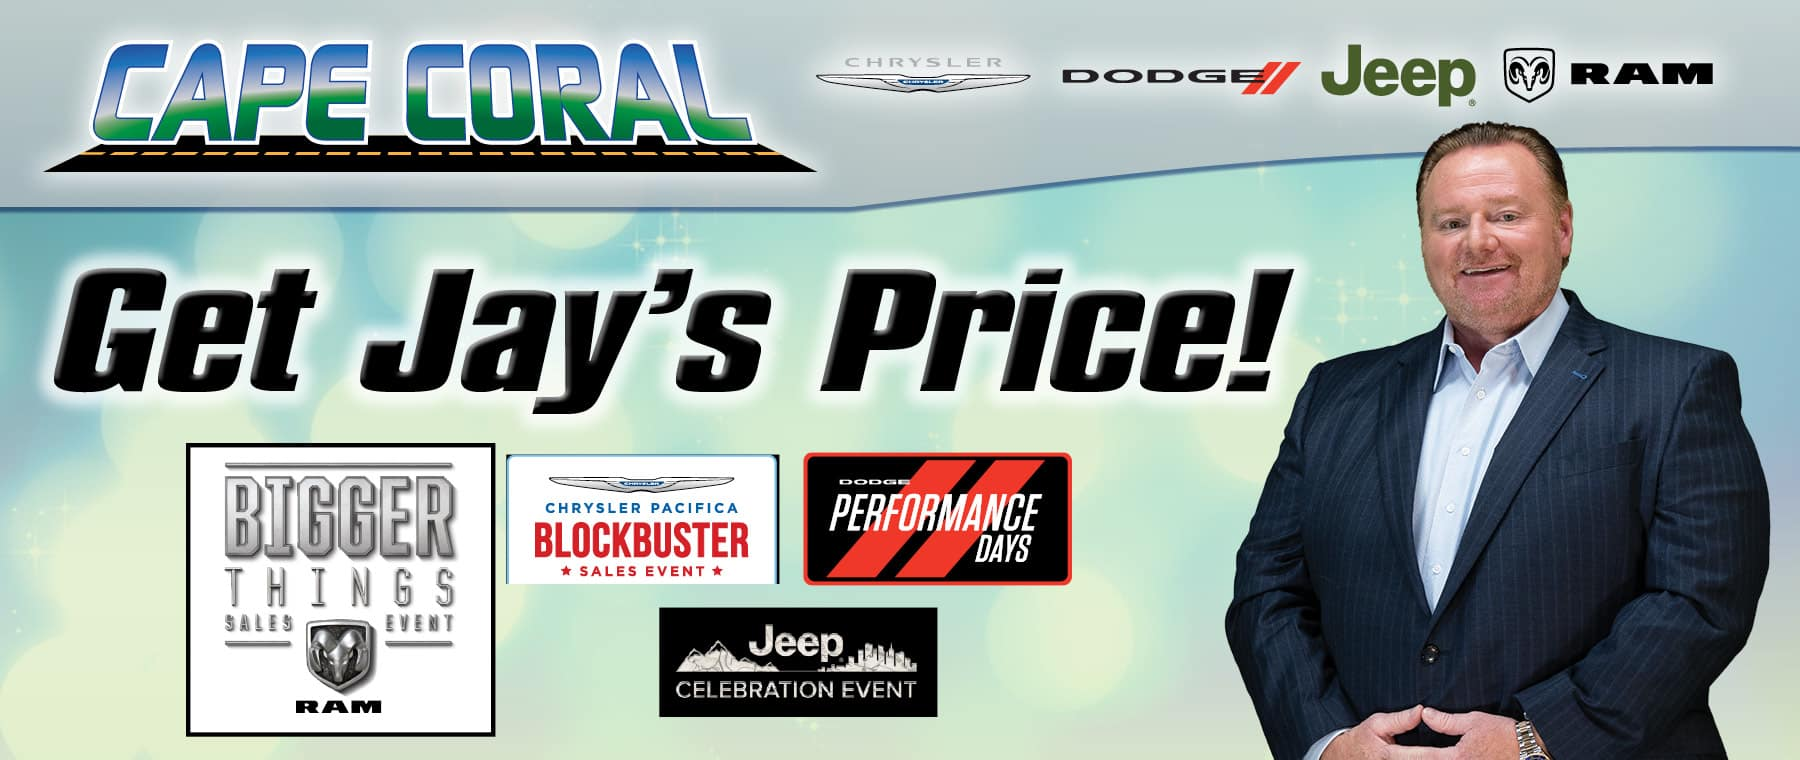 Get Jay's Price at Cape Coral Chrysler Dodge Jeep Ram!